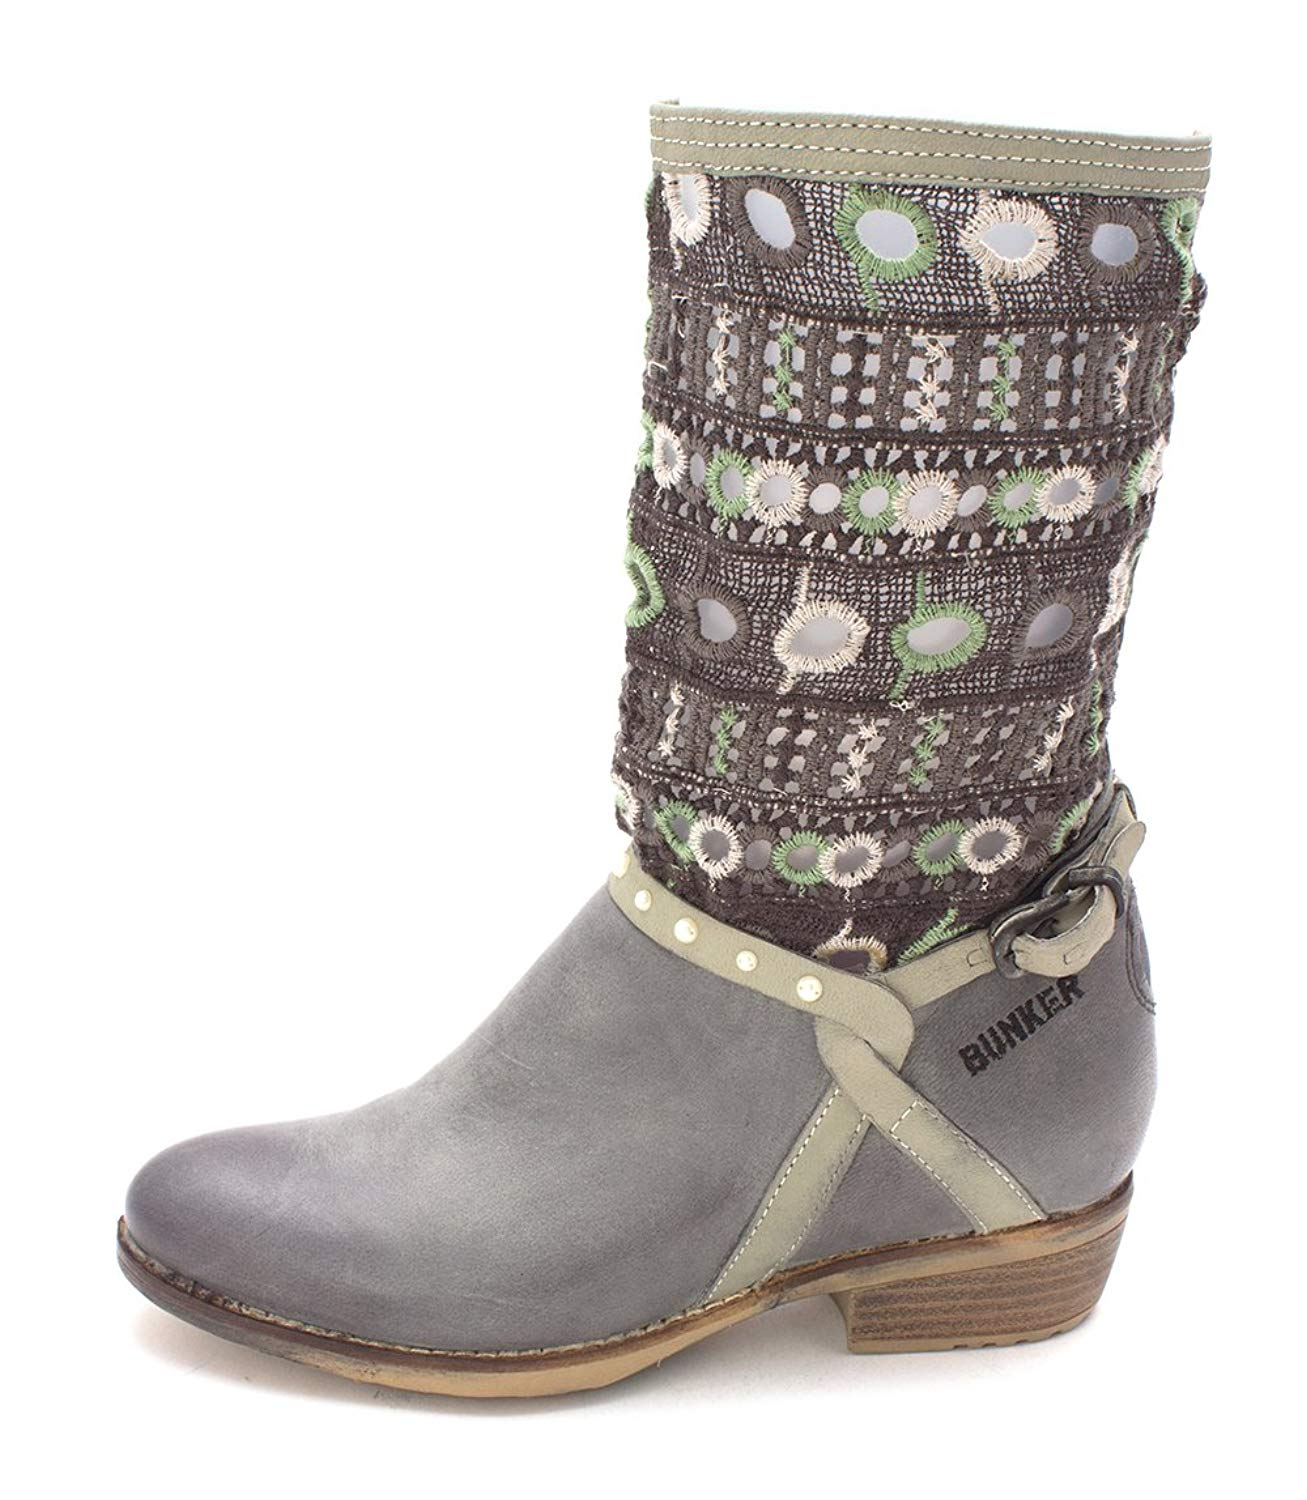 951f5546098 Cheap Bunker Boots, find Bunker Boots deals on line at Alibaba.com